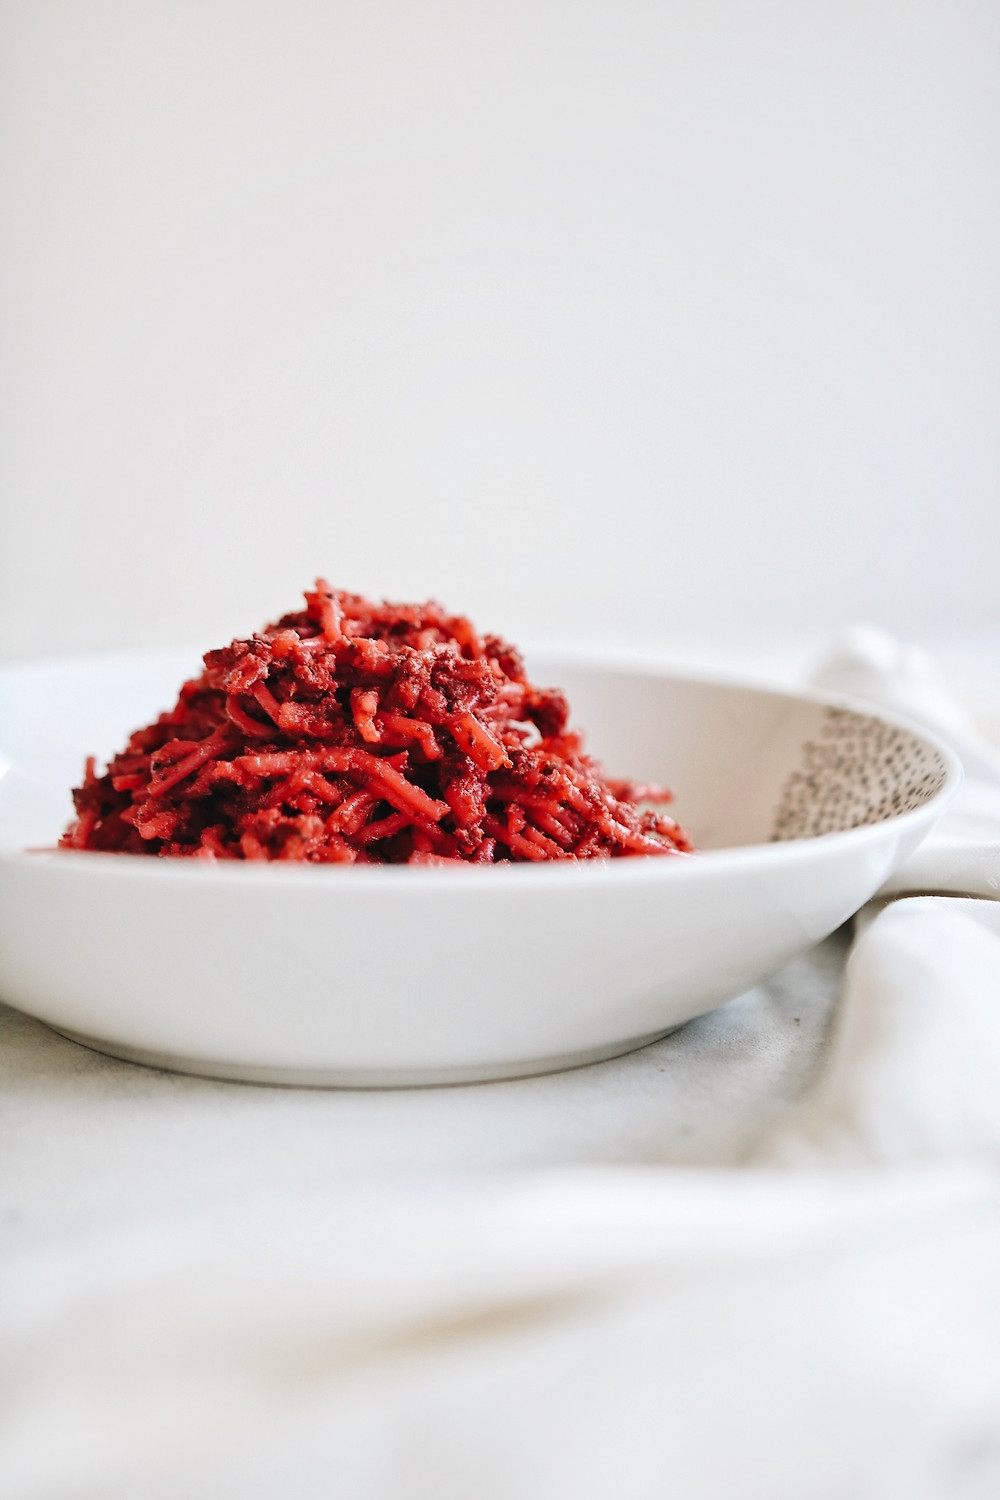 Gluten free pasta with a red pesto made of beets and toasted pumpkin seeds in a white bowl on a white background.